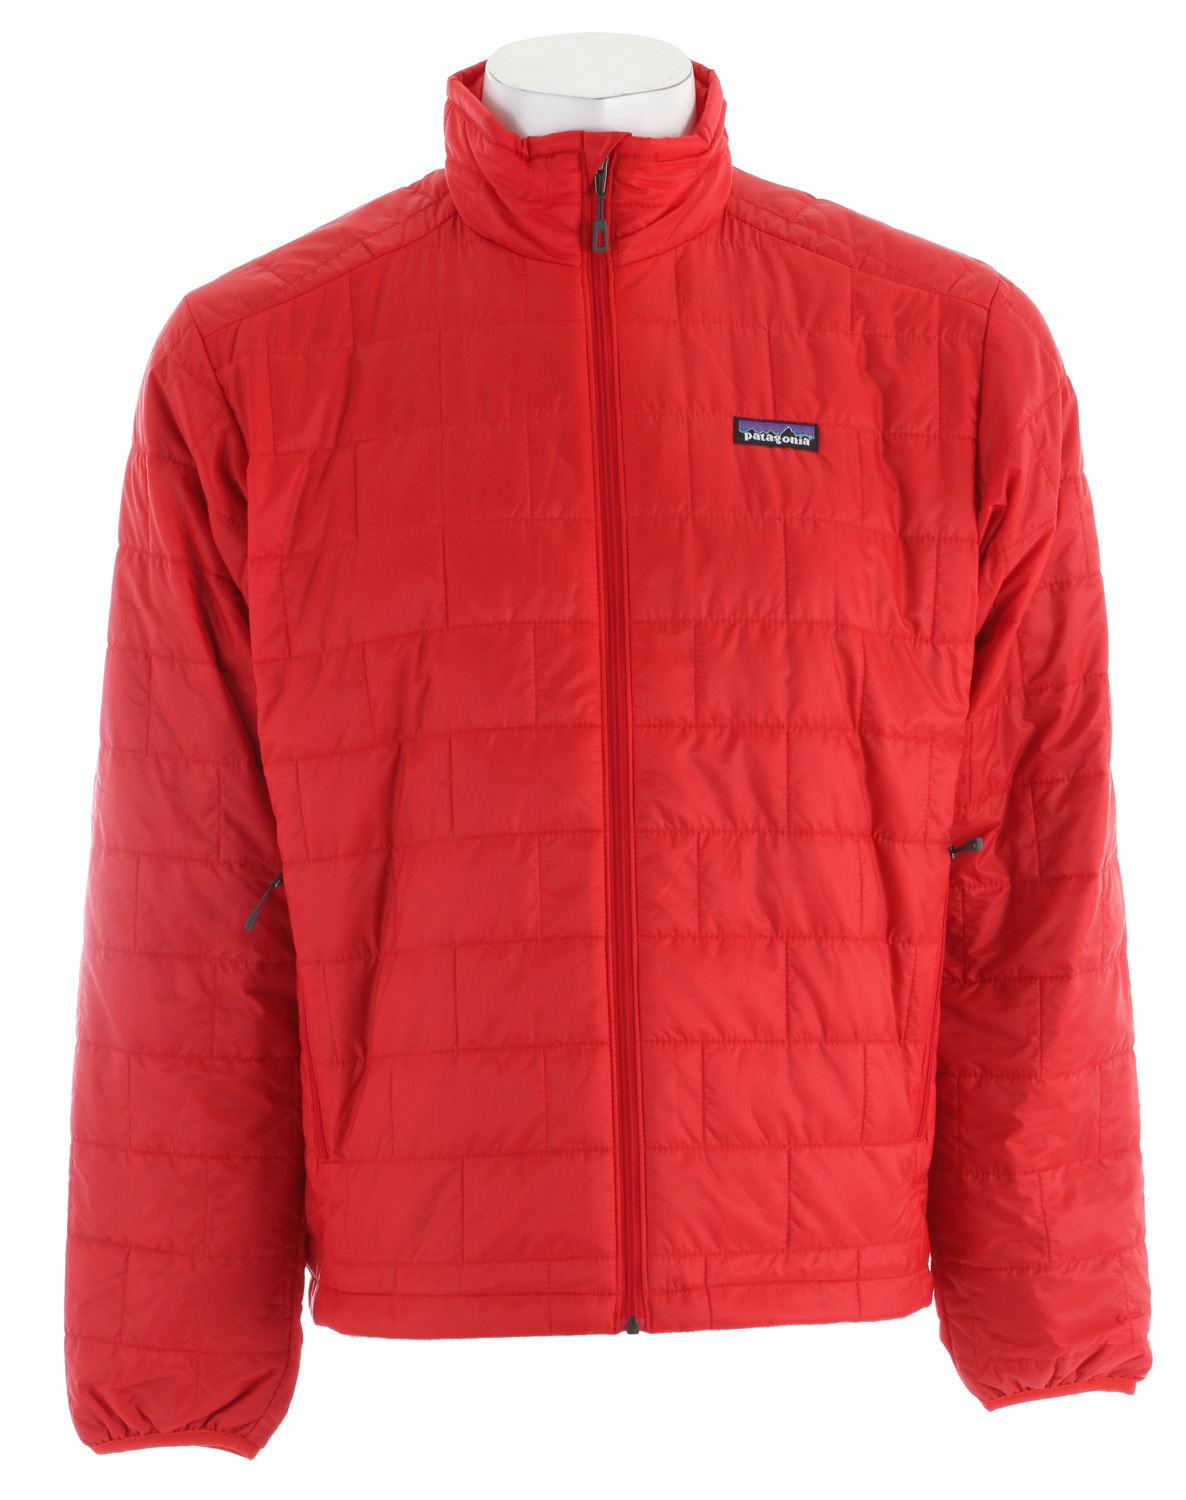 Windproof and water-resistant, the full-zip Nano Puff Jacket is made with warm, incredibly lightweight, highly compressible PrimaLoft One insulation. Ideal as an insulating layer or outerwear in cold climates. fabric: Shell: 1-oz 15-denier 100% recycled polyester. Insulation: 60-g PrimaLoft One 100% polyester (70% recycled). Lining: 1.4-oz 22-denier 100% recycled polyester. Shell and lining have a Deluge DWR (durable water repellent) finishKey Features of the Patagonia Nano Puff Jacket: Ultralight ripstop recycled polyester shell fabric features a Deluge DWR finish Lightweight 60-g PrimaLoft One polyester insulation provides excellent warmth and compressibility Unique quilt pattern holds insulation in place, increasing durability and longevity Pockets: Two zippered handwarmers, one internal zippered chest pocket, which doubles as a stuff sack with a reinforced carabineer clip-in loop Dual-adjust drawcord hem seals in warmth, seals out wind - $131.95